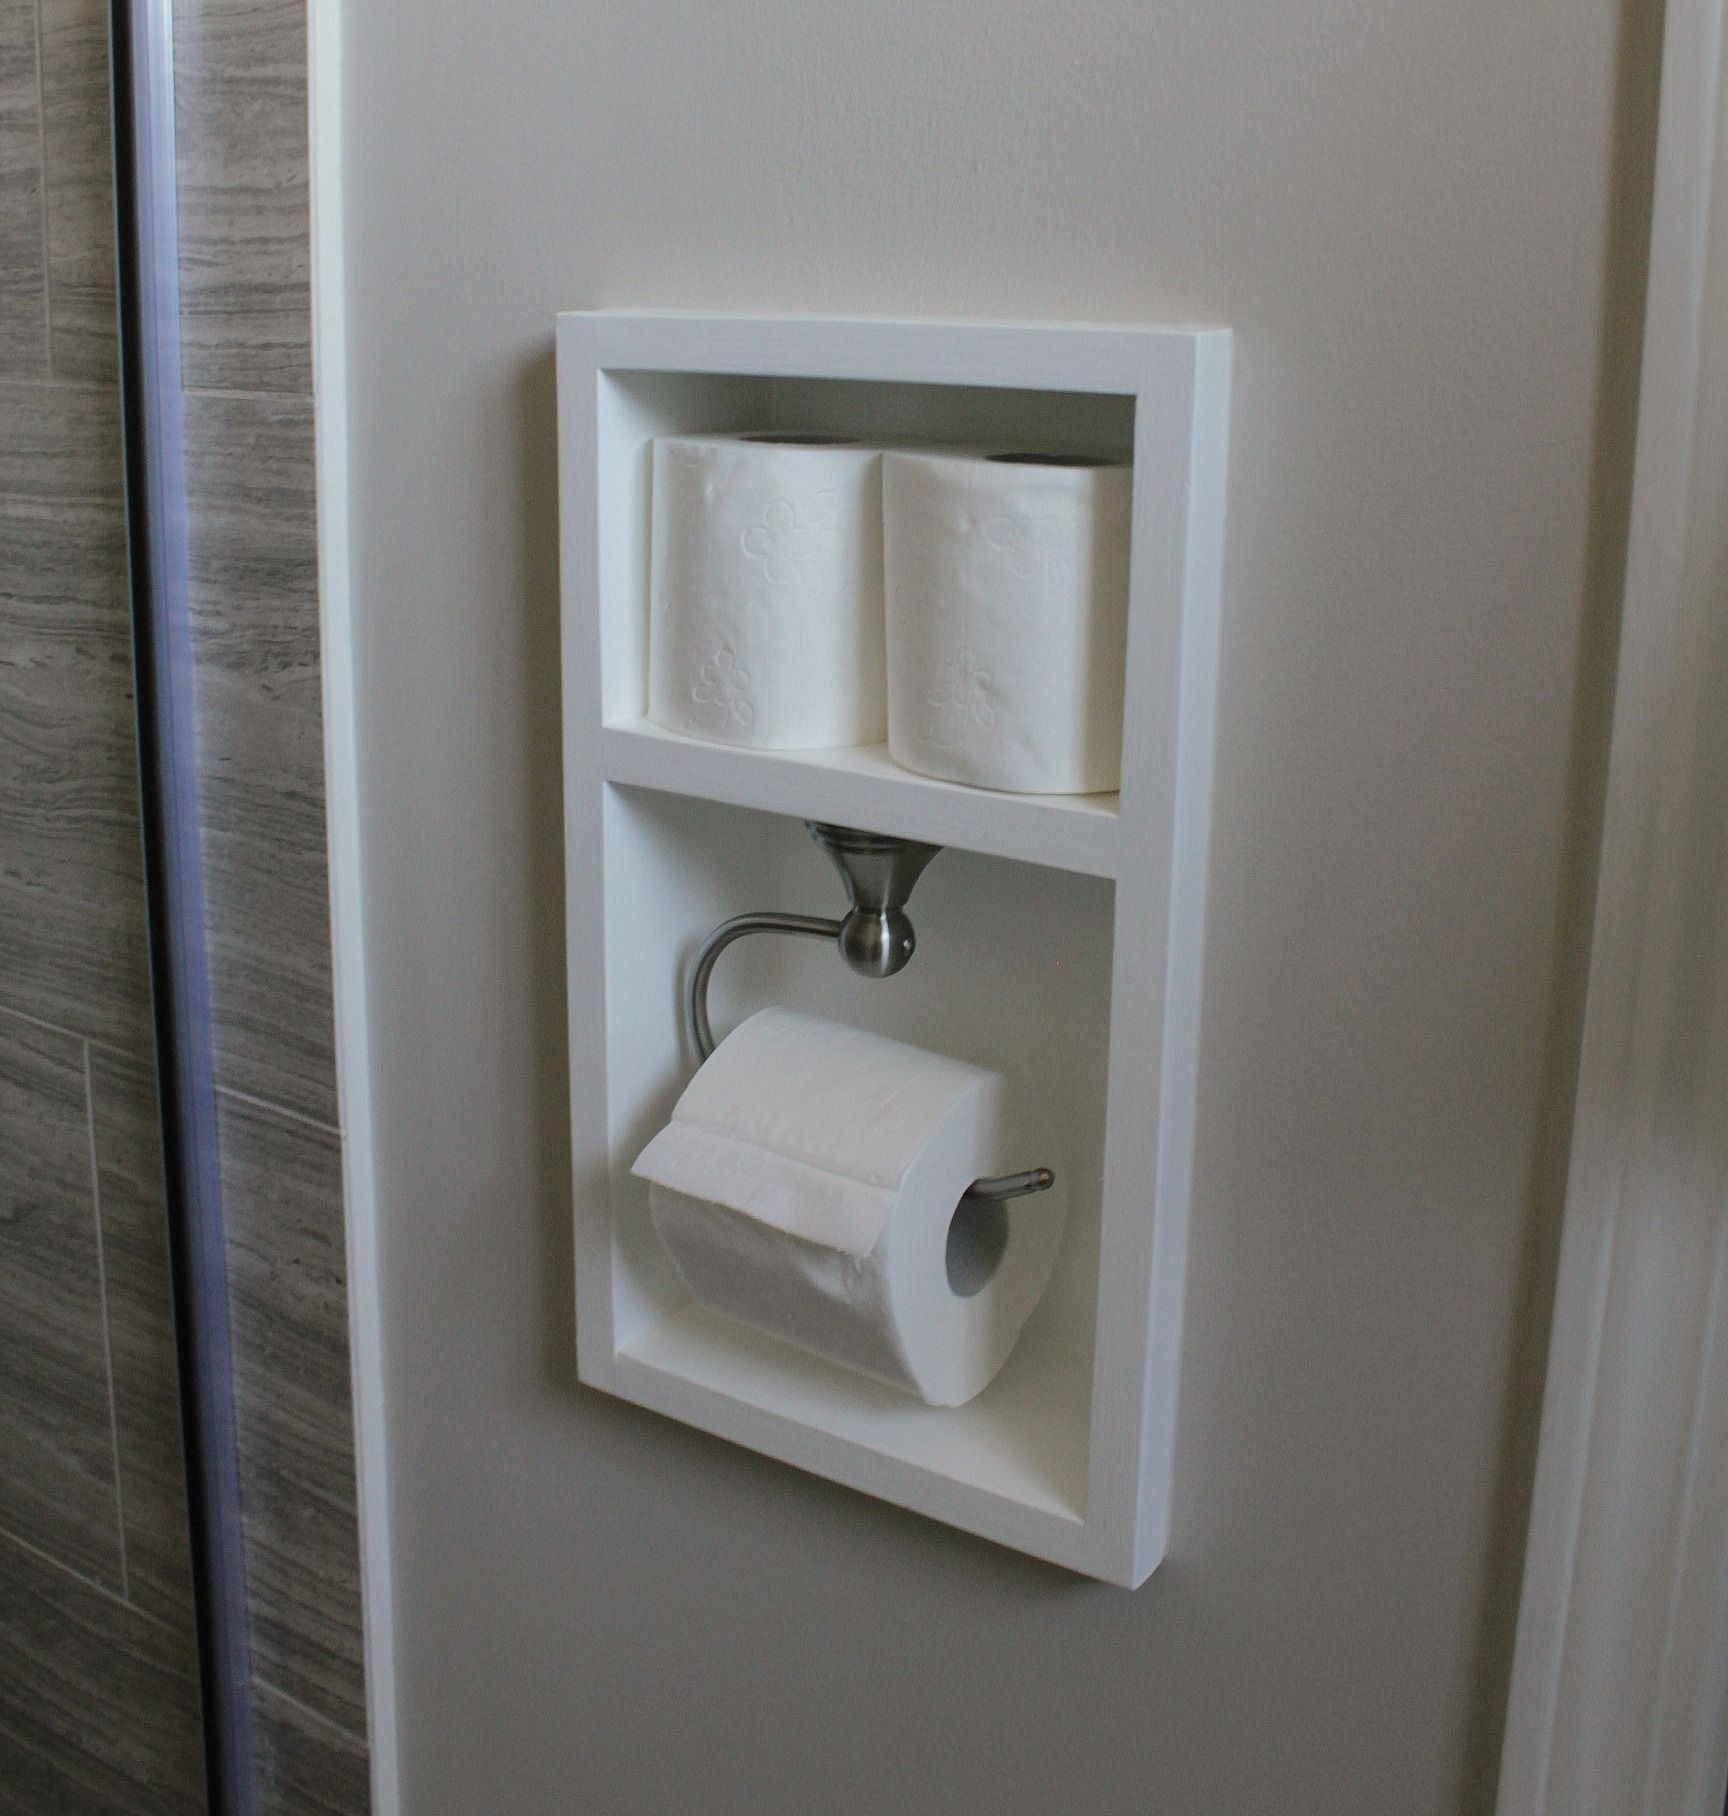 30 Best Bathroom Storage Ideas to Save Space | Small bathroom ...